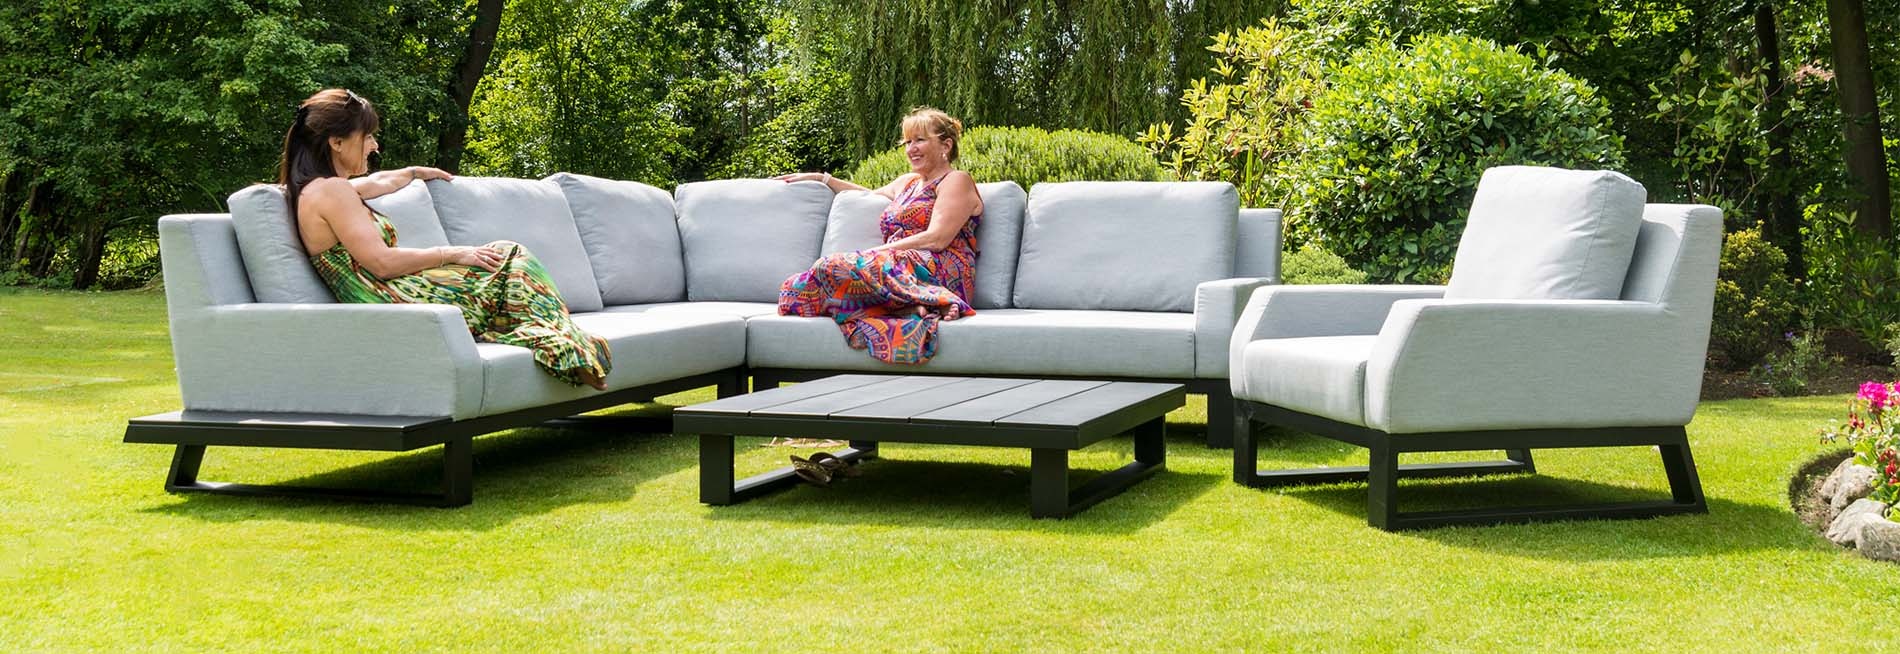 Katie Blake Outdoor Living Garden Furniture